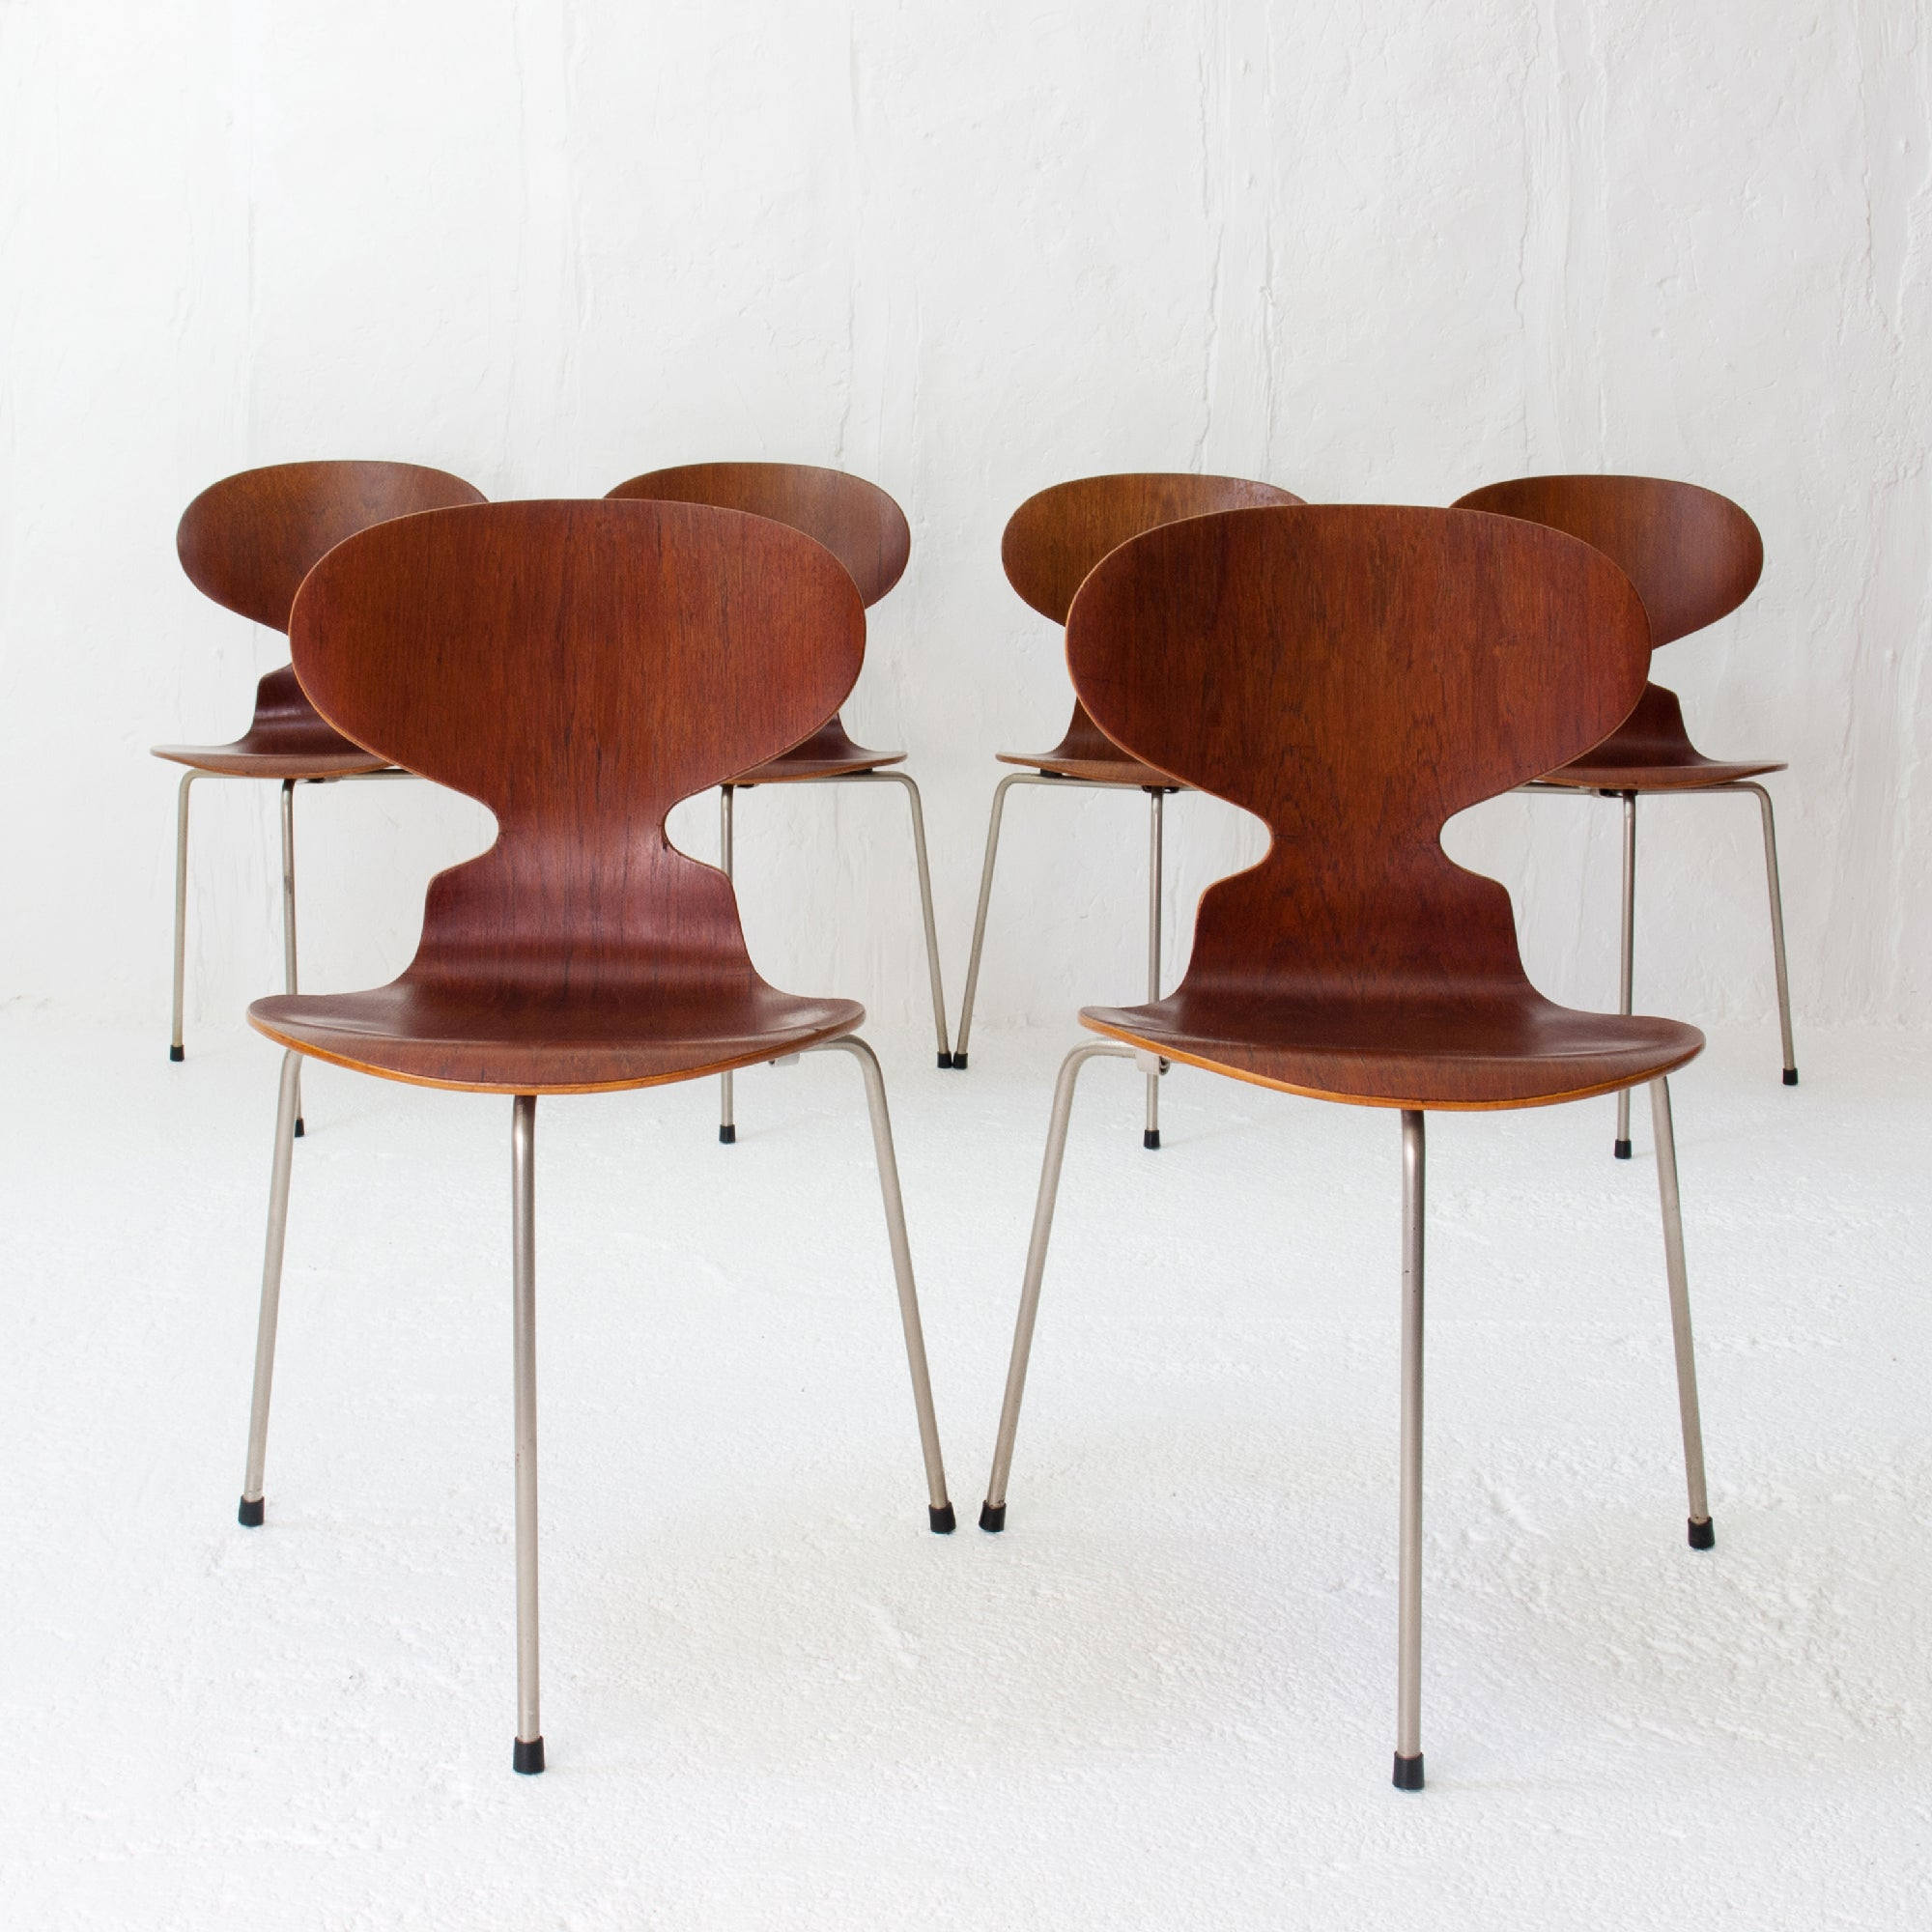 Teak Ant Chairs 3100 Arne Jacobsen For Fritz Hansen, Early